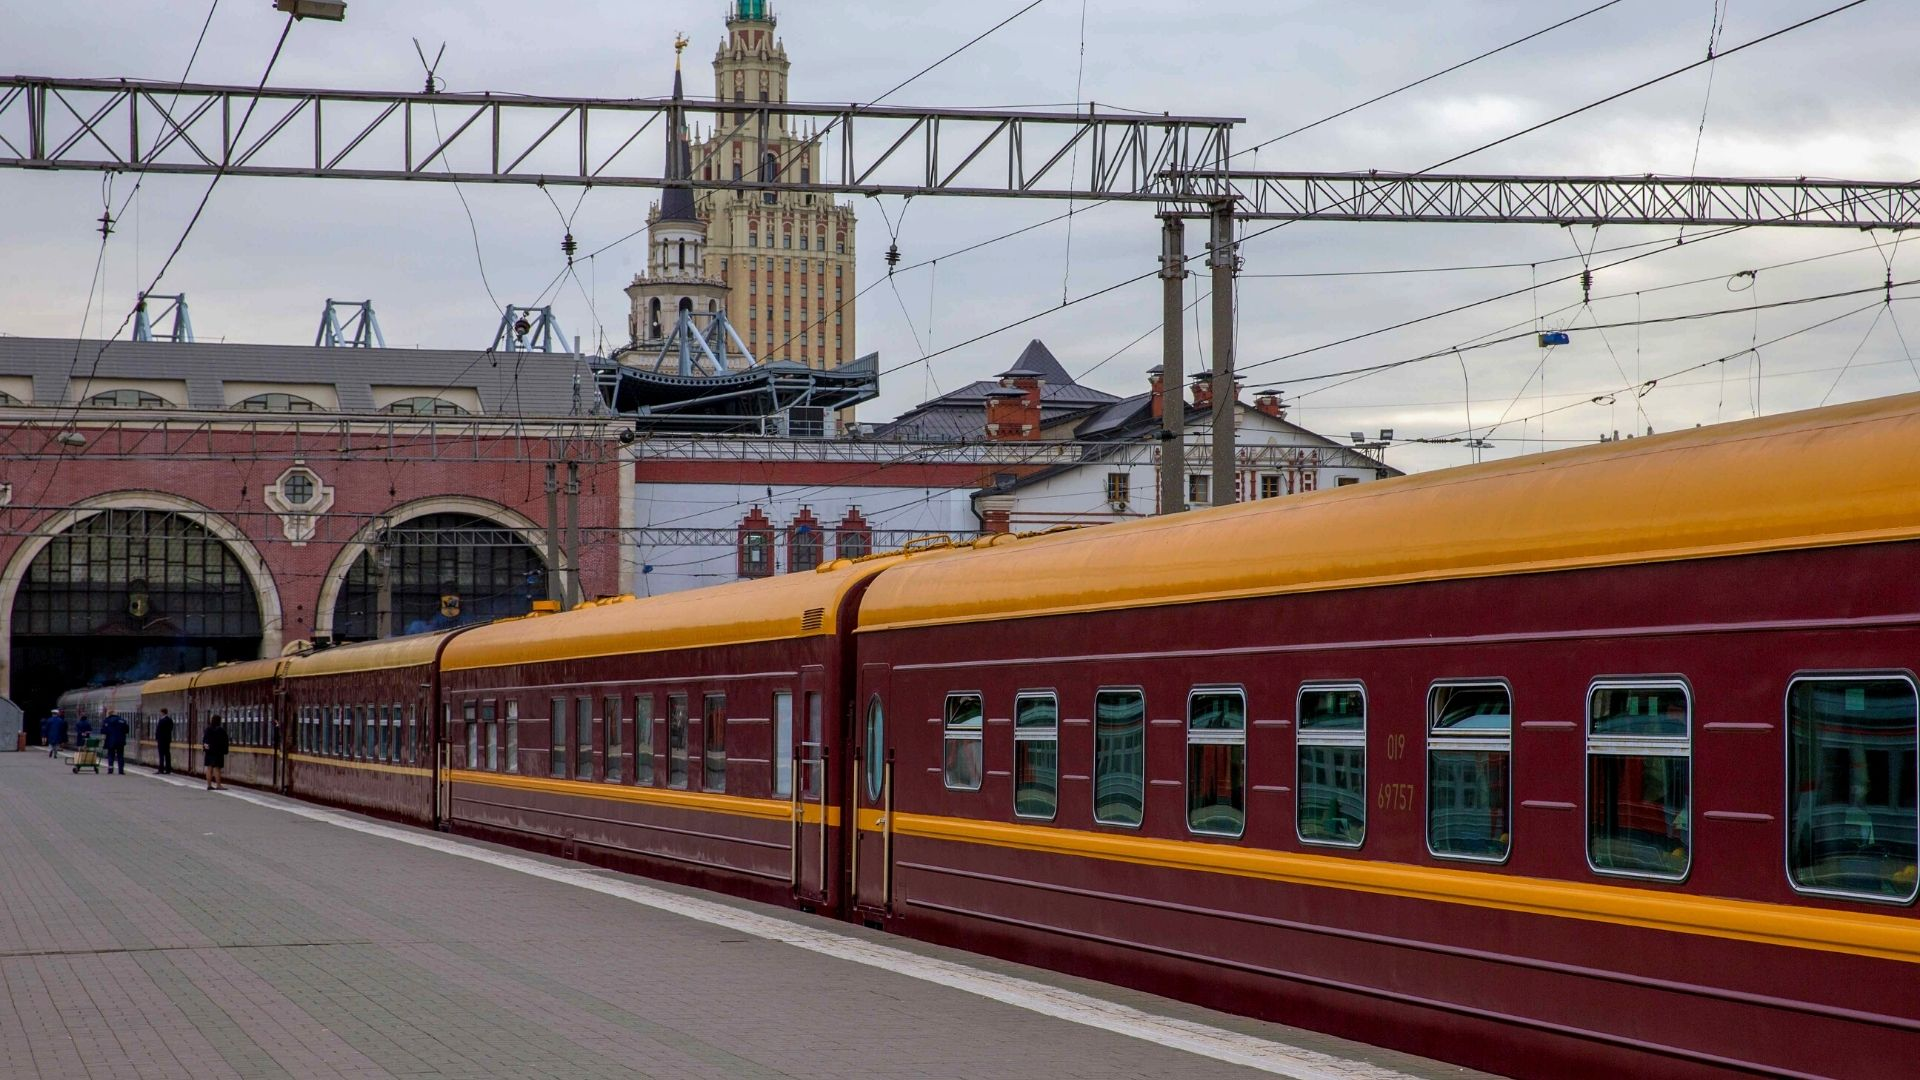 The Tsar's Gold train in station